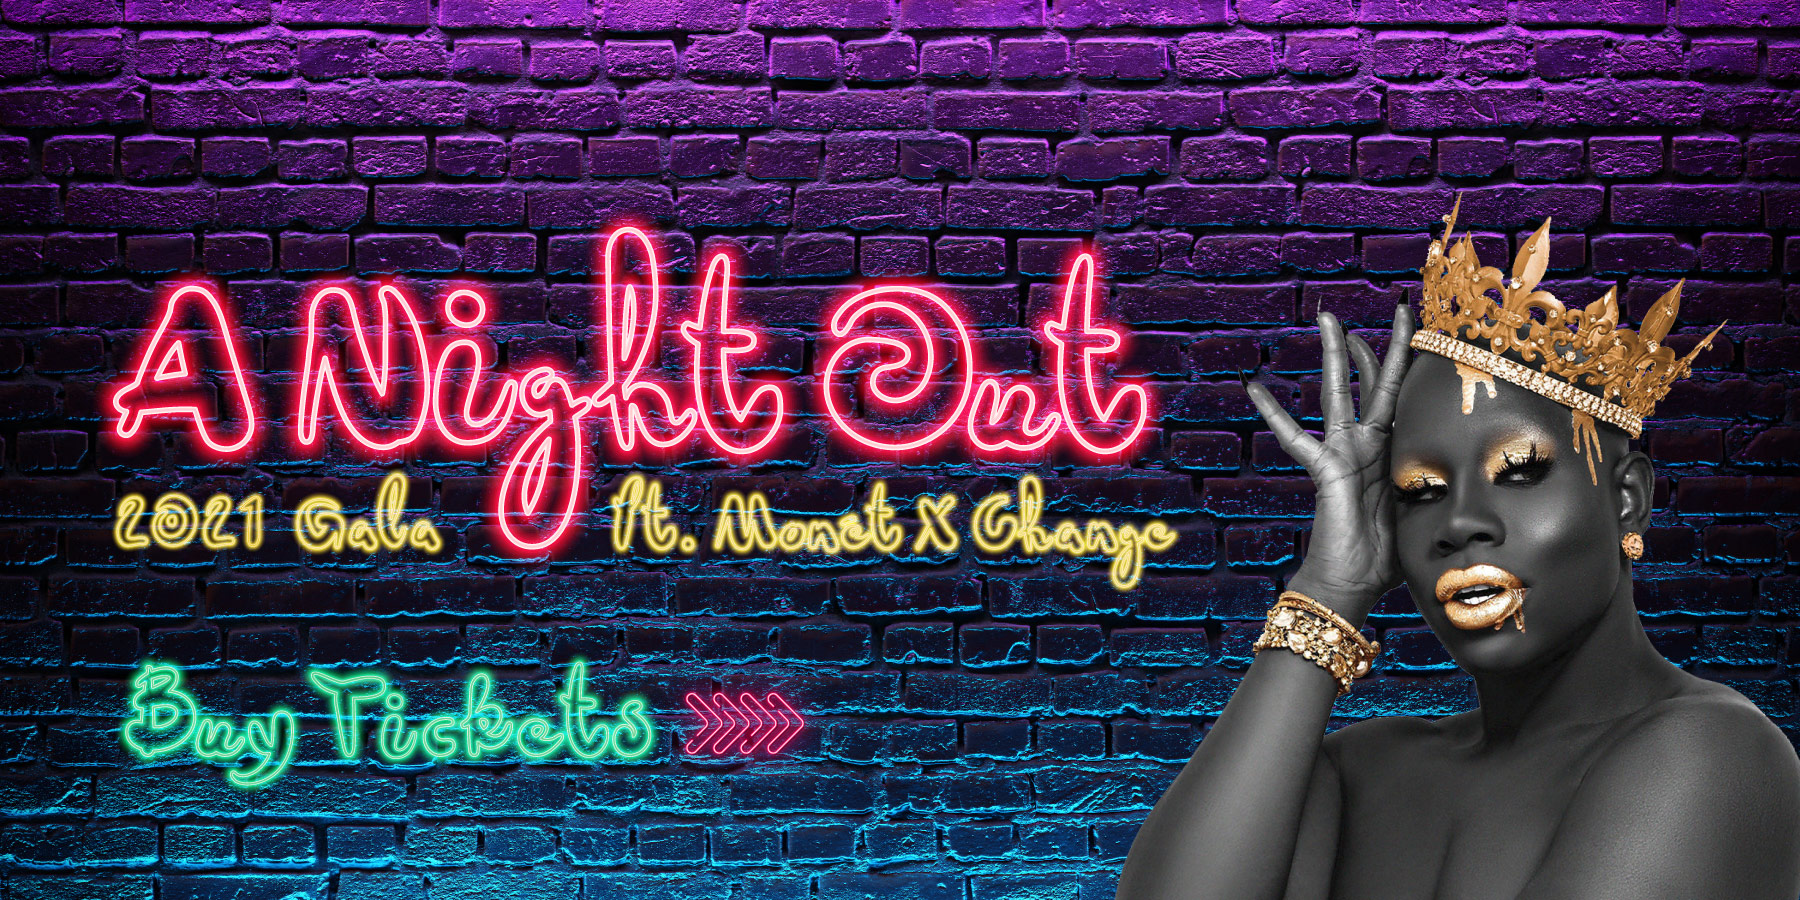 OutCare's 1st Annual Gala: A Night Out featuring Monet X Change